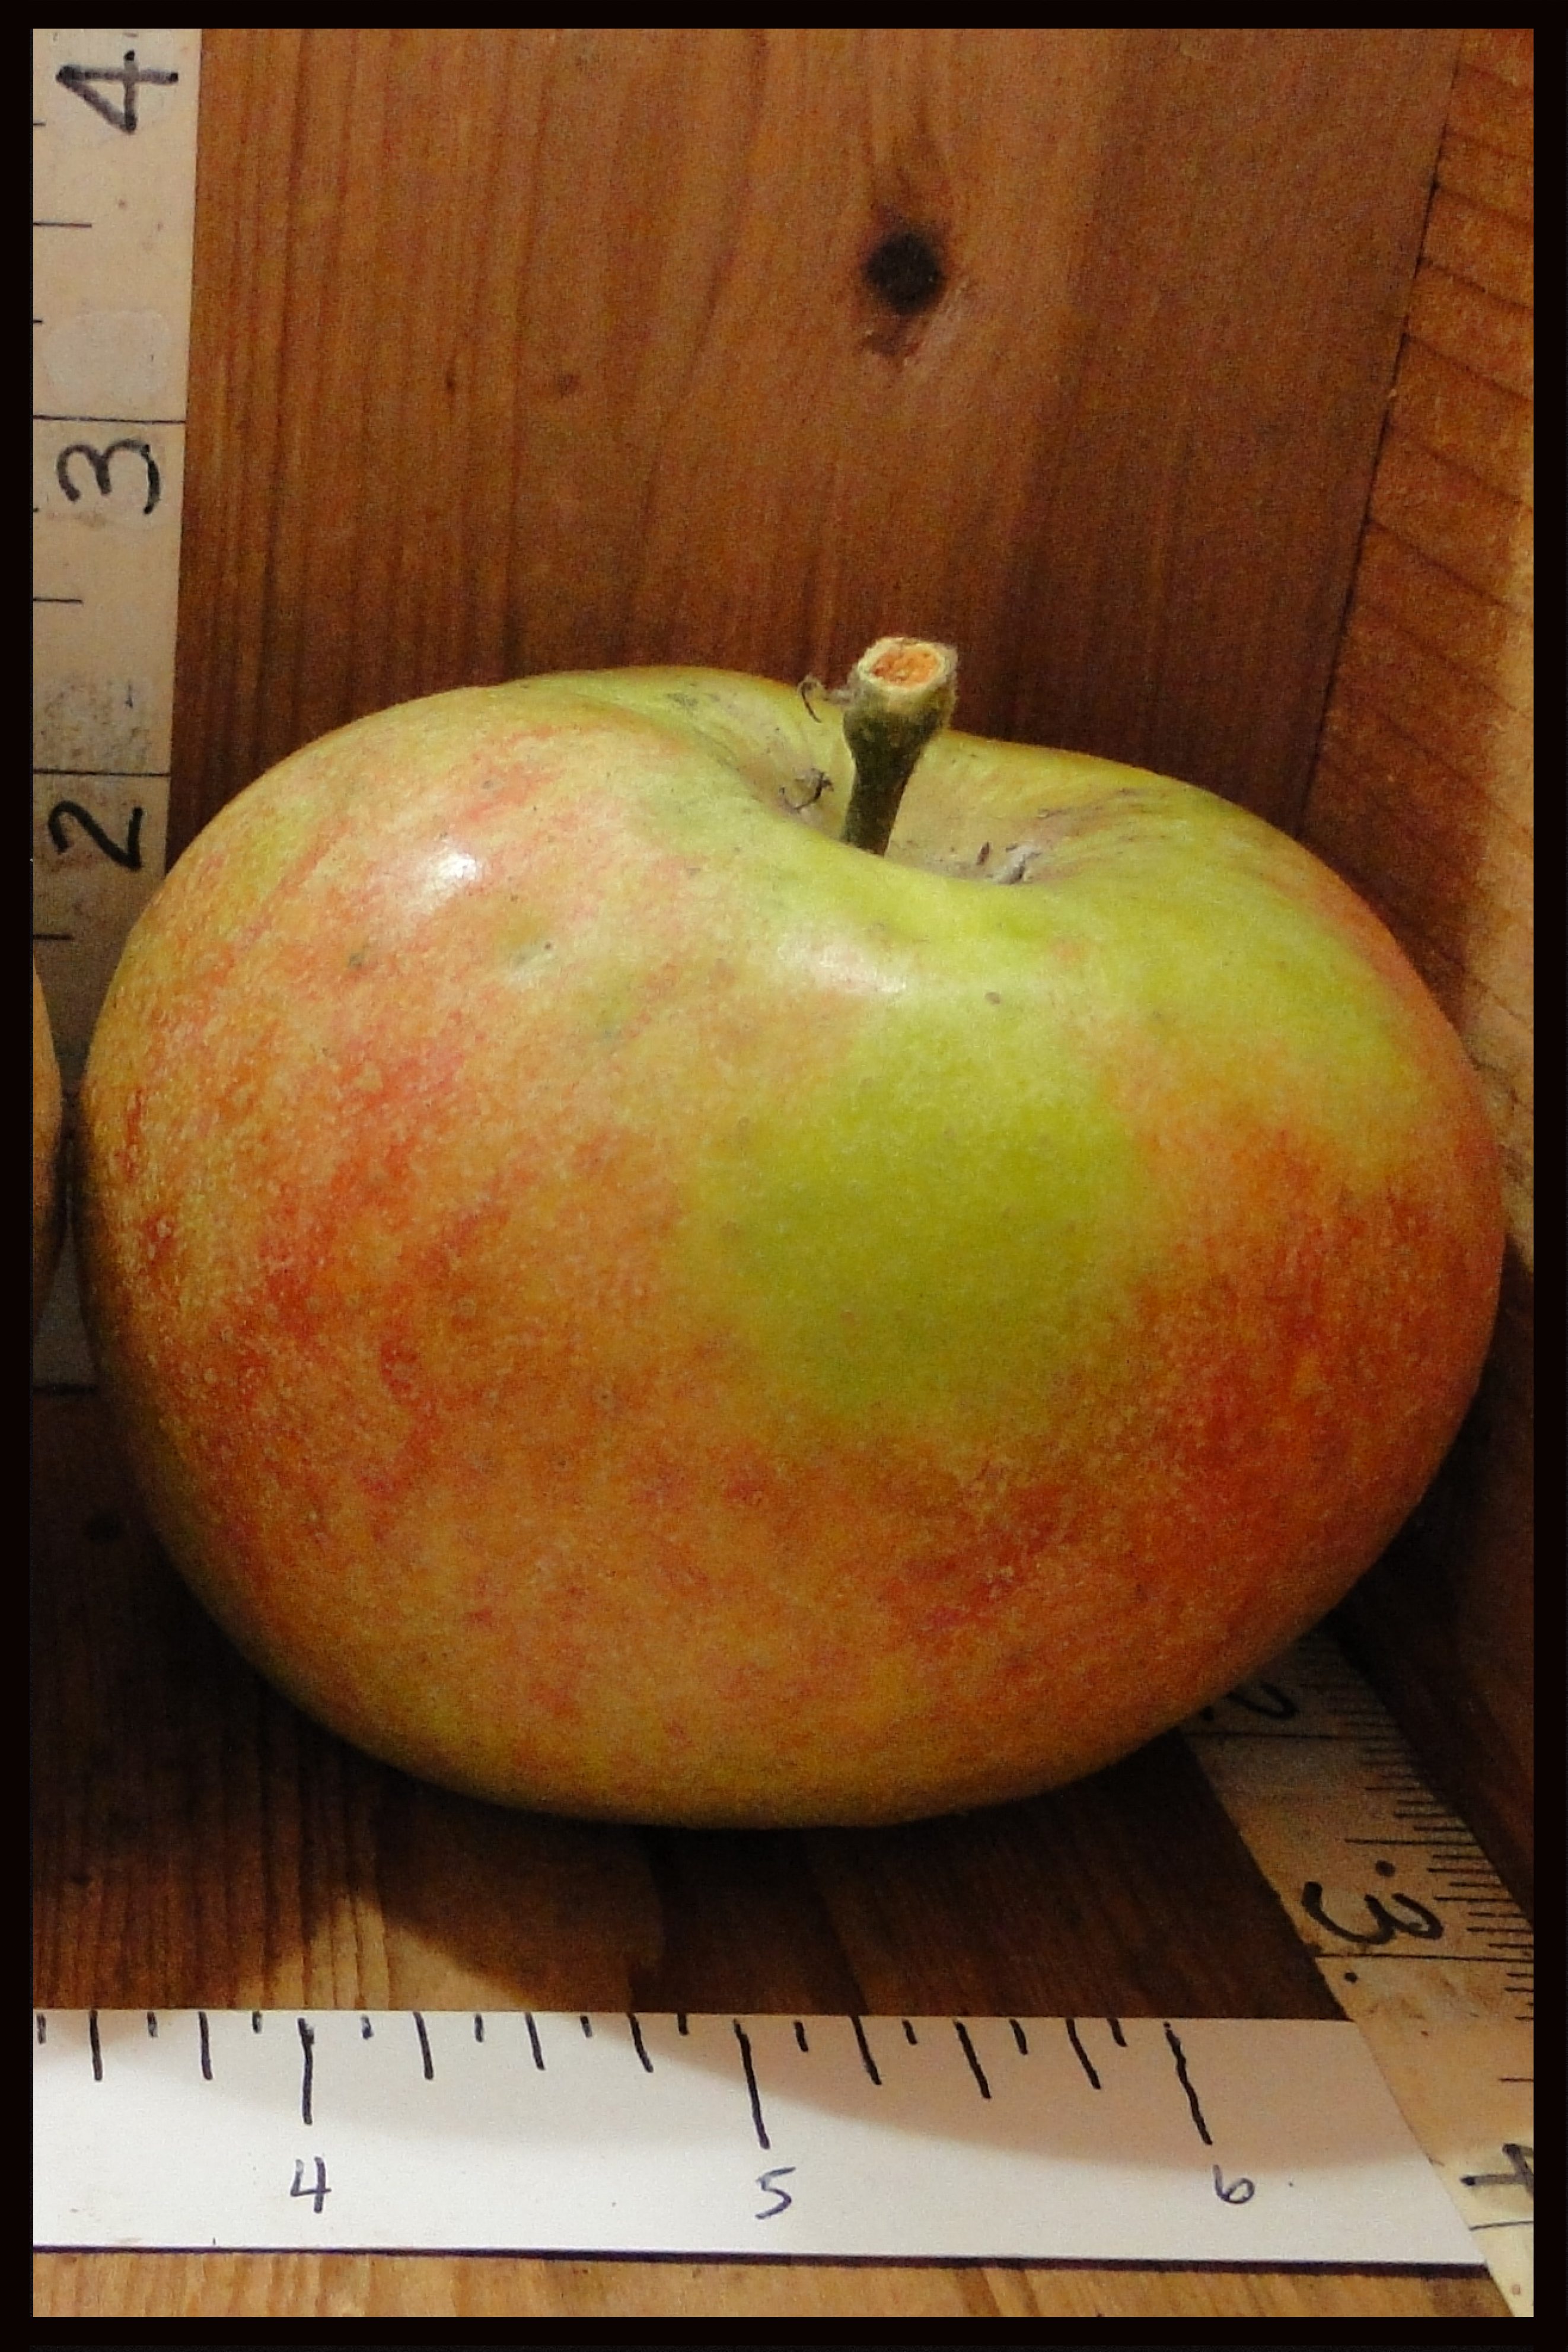 green apple with widespread pink blush